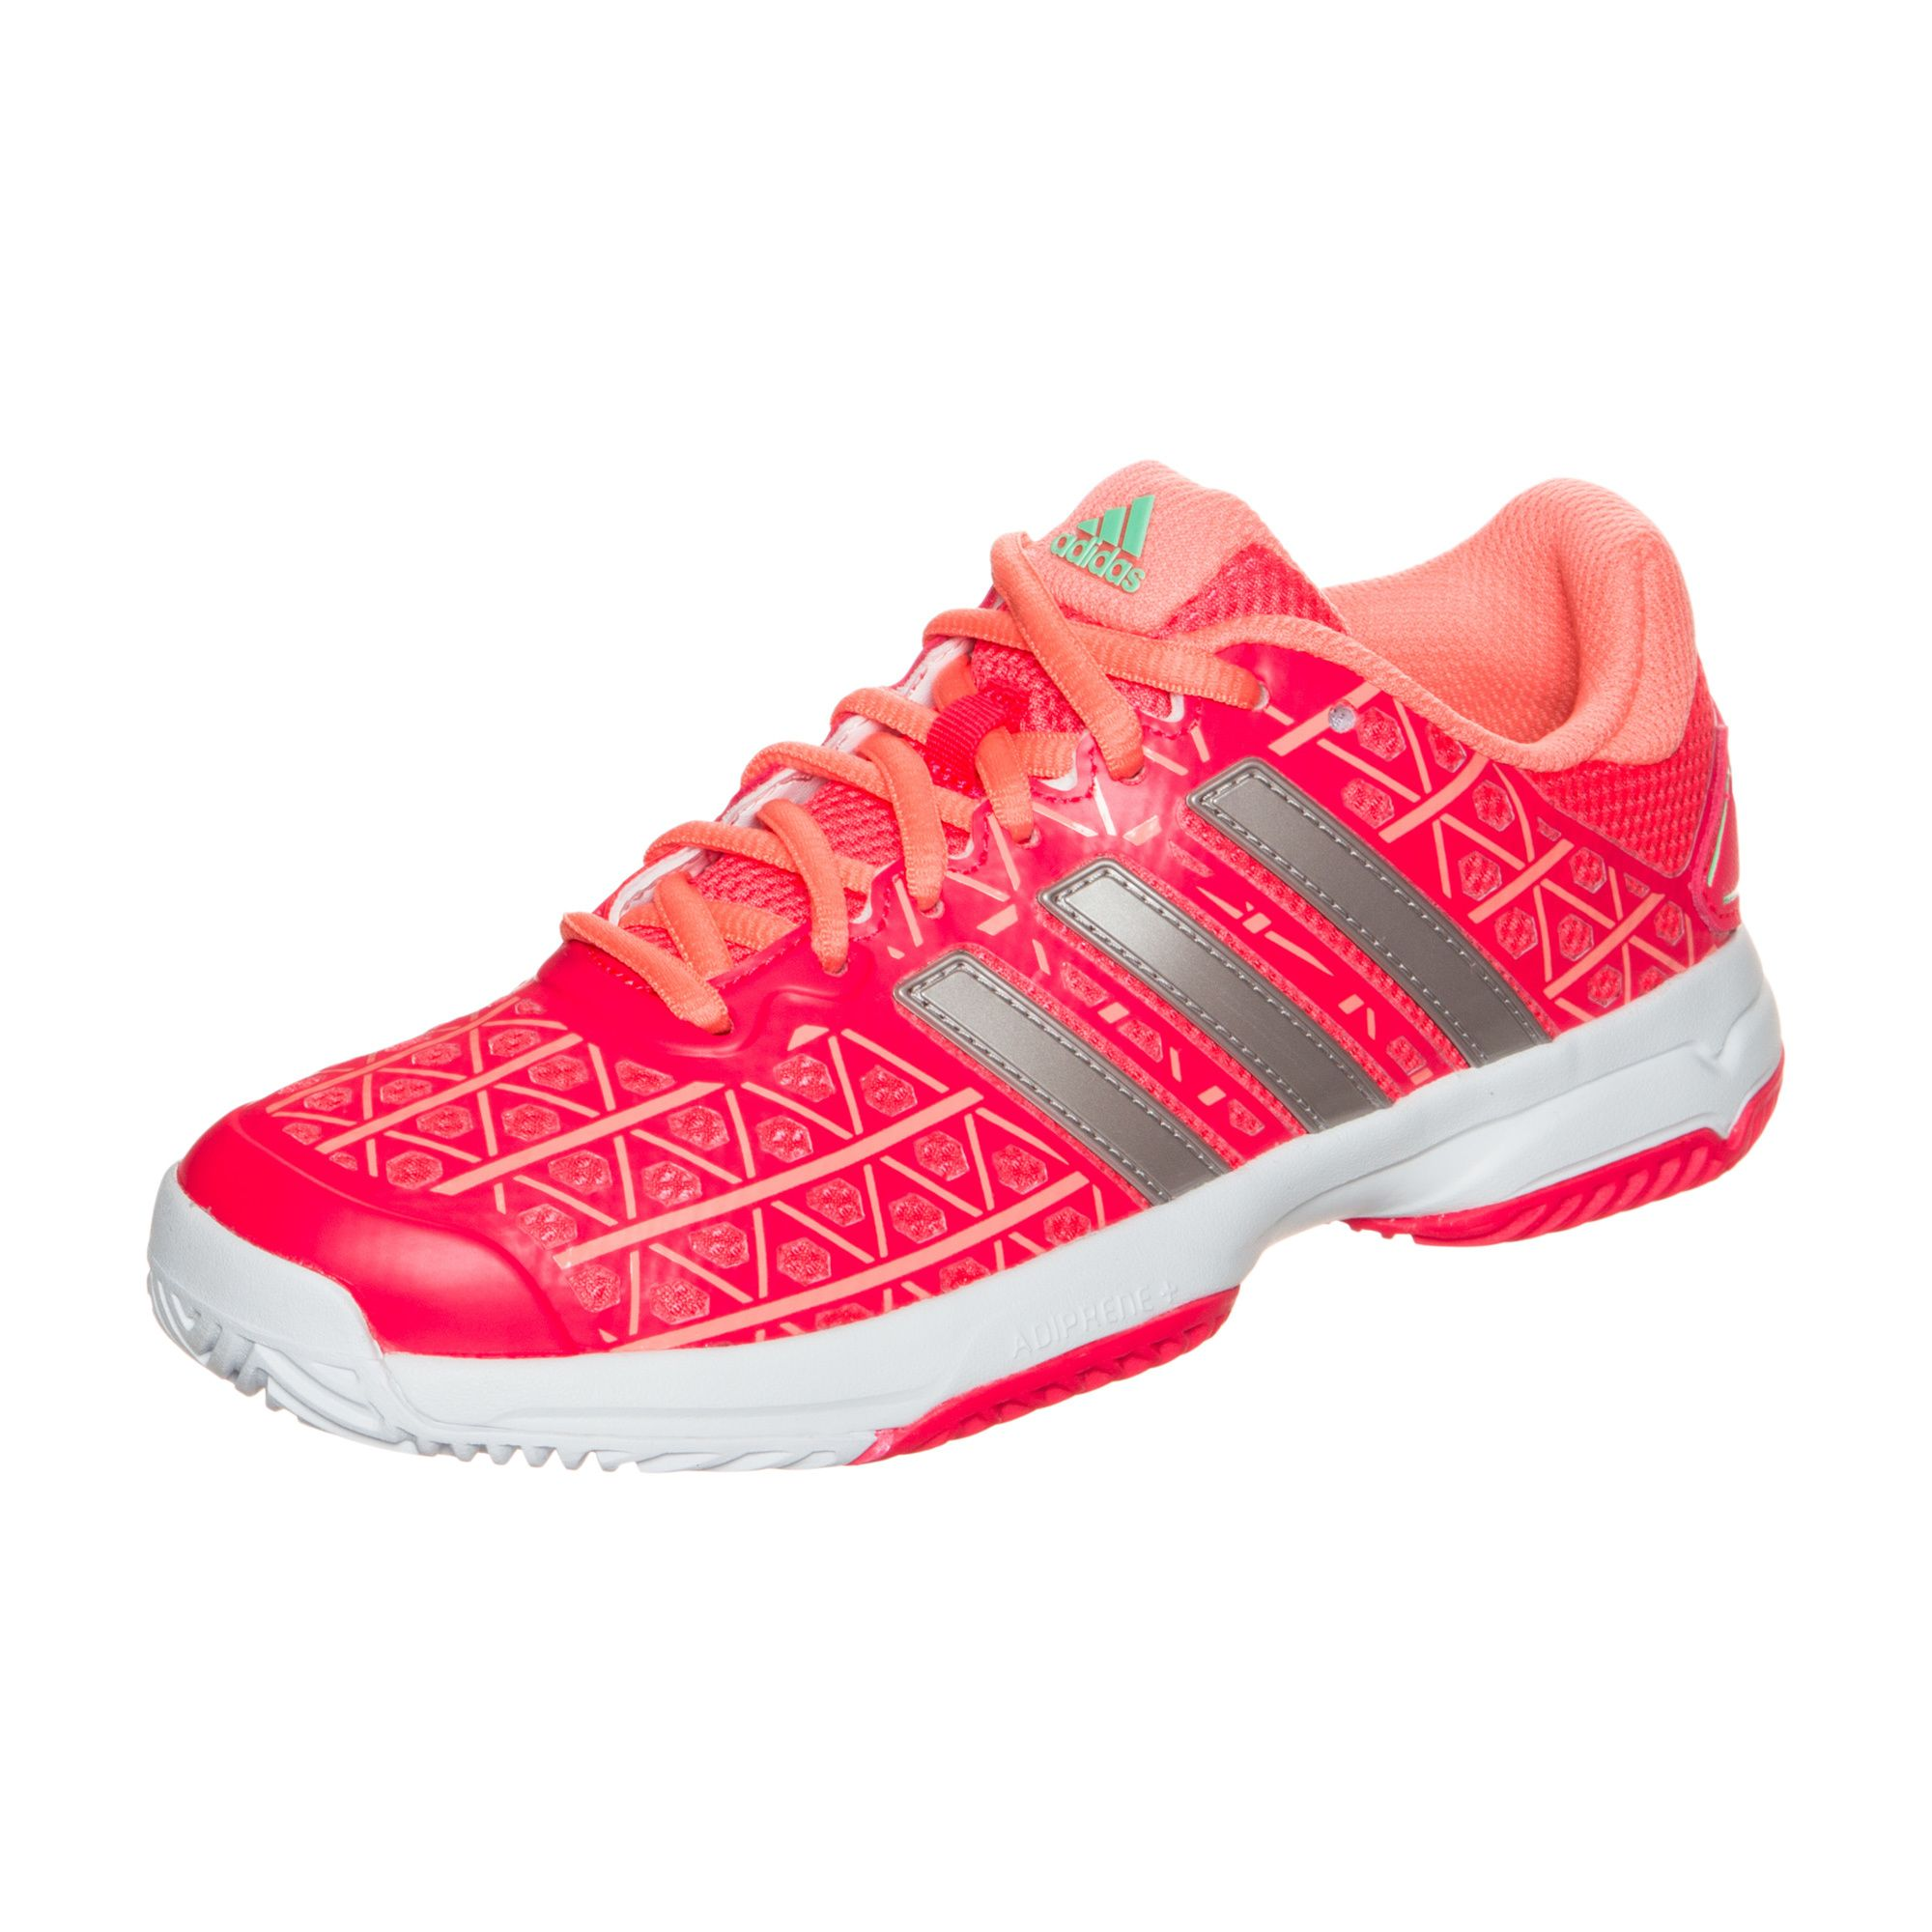 ADIDAS PERFORMANCE adidas Performance Barricade Club Tennisschuh Kinder